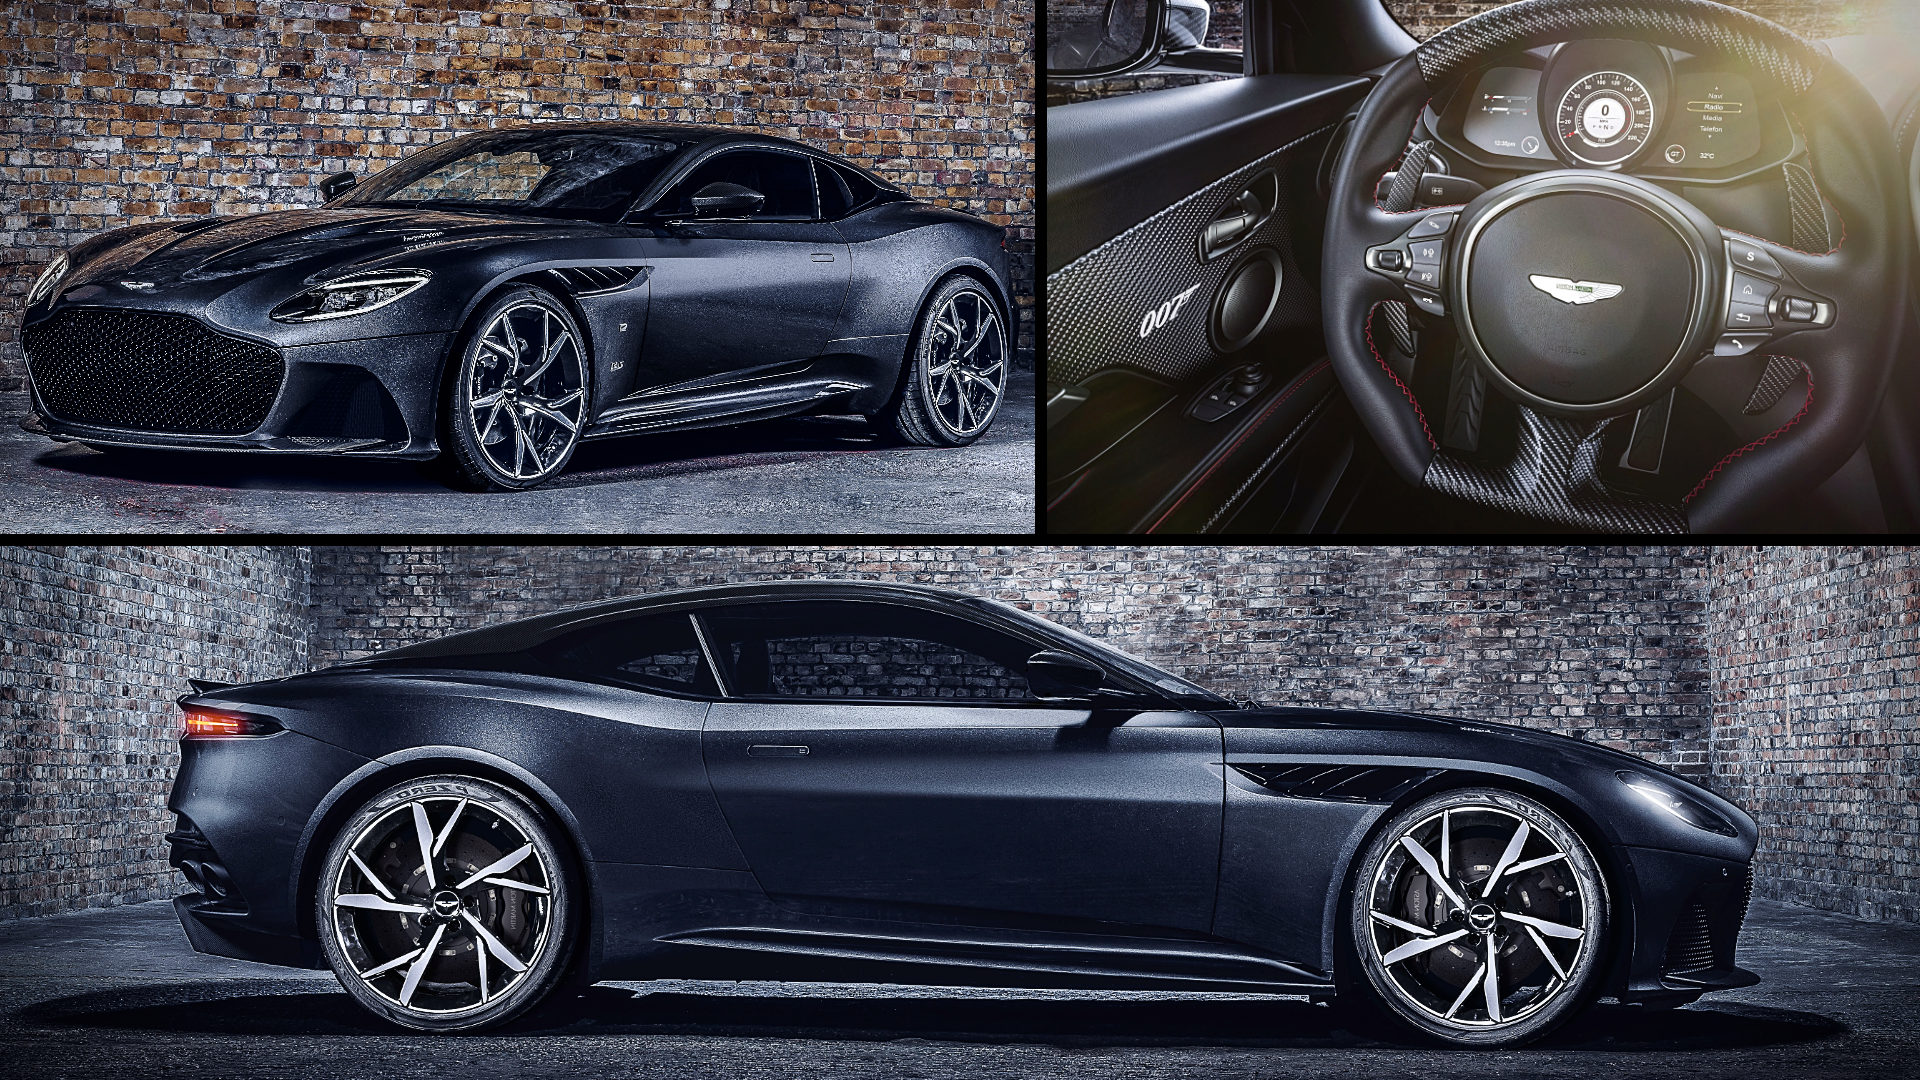 James Bond Car 2021 Aston Martin DBS Superleggera